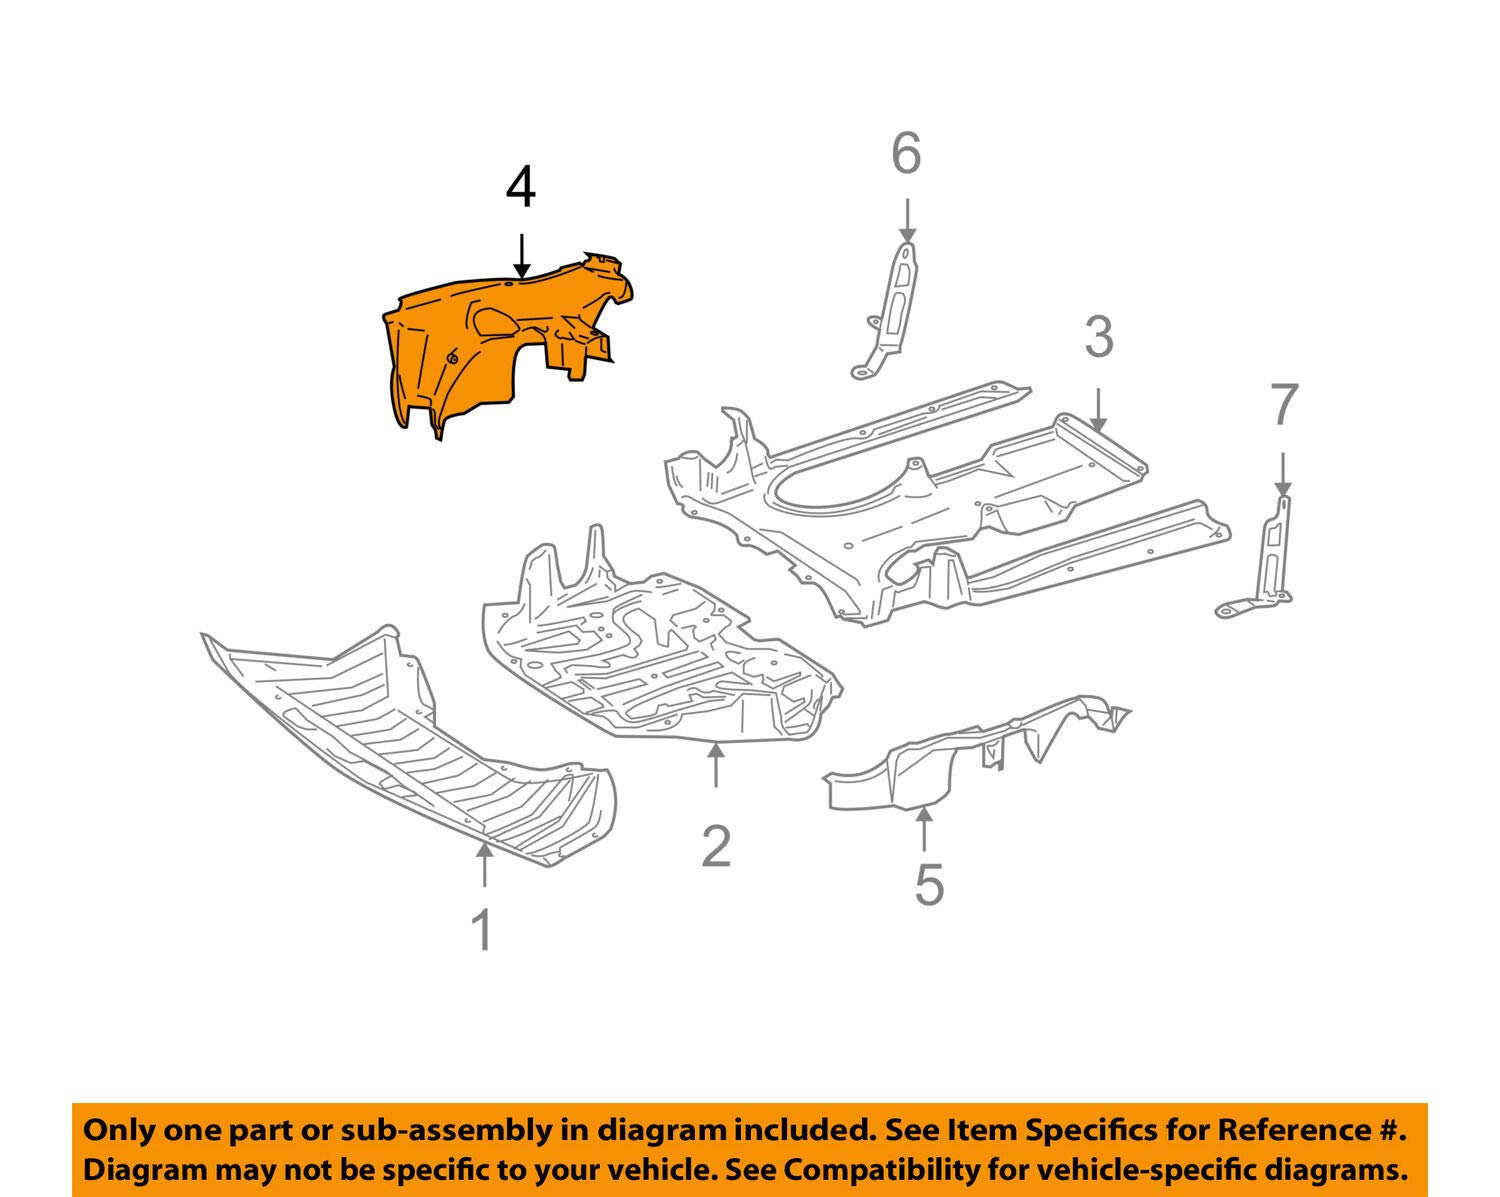 Mercedes Benz Genuine Side Shield 221-524-24-25 by Mercedes Benz (Image #3)